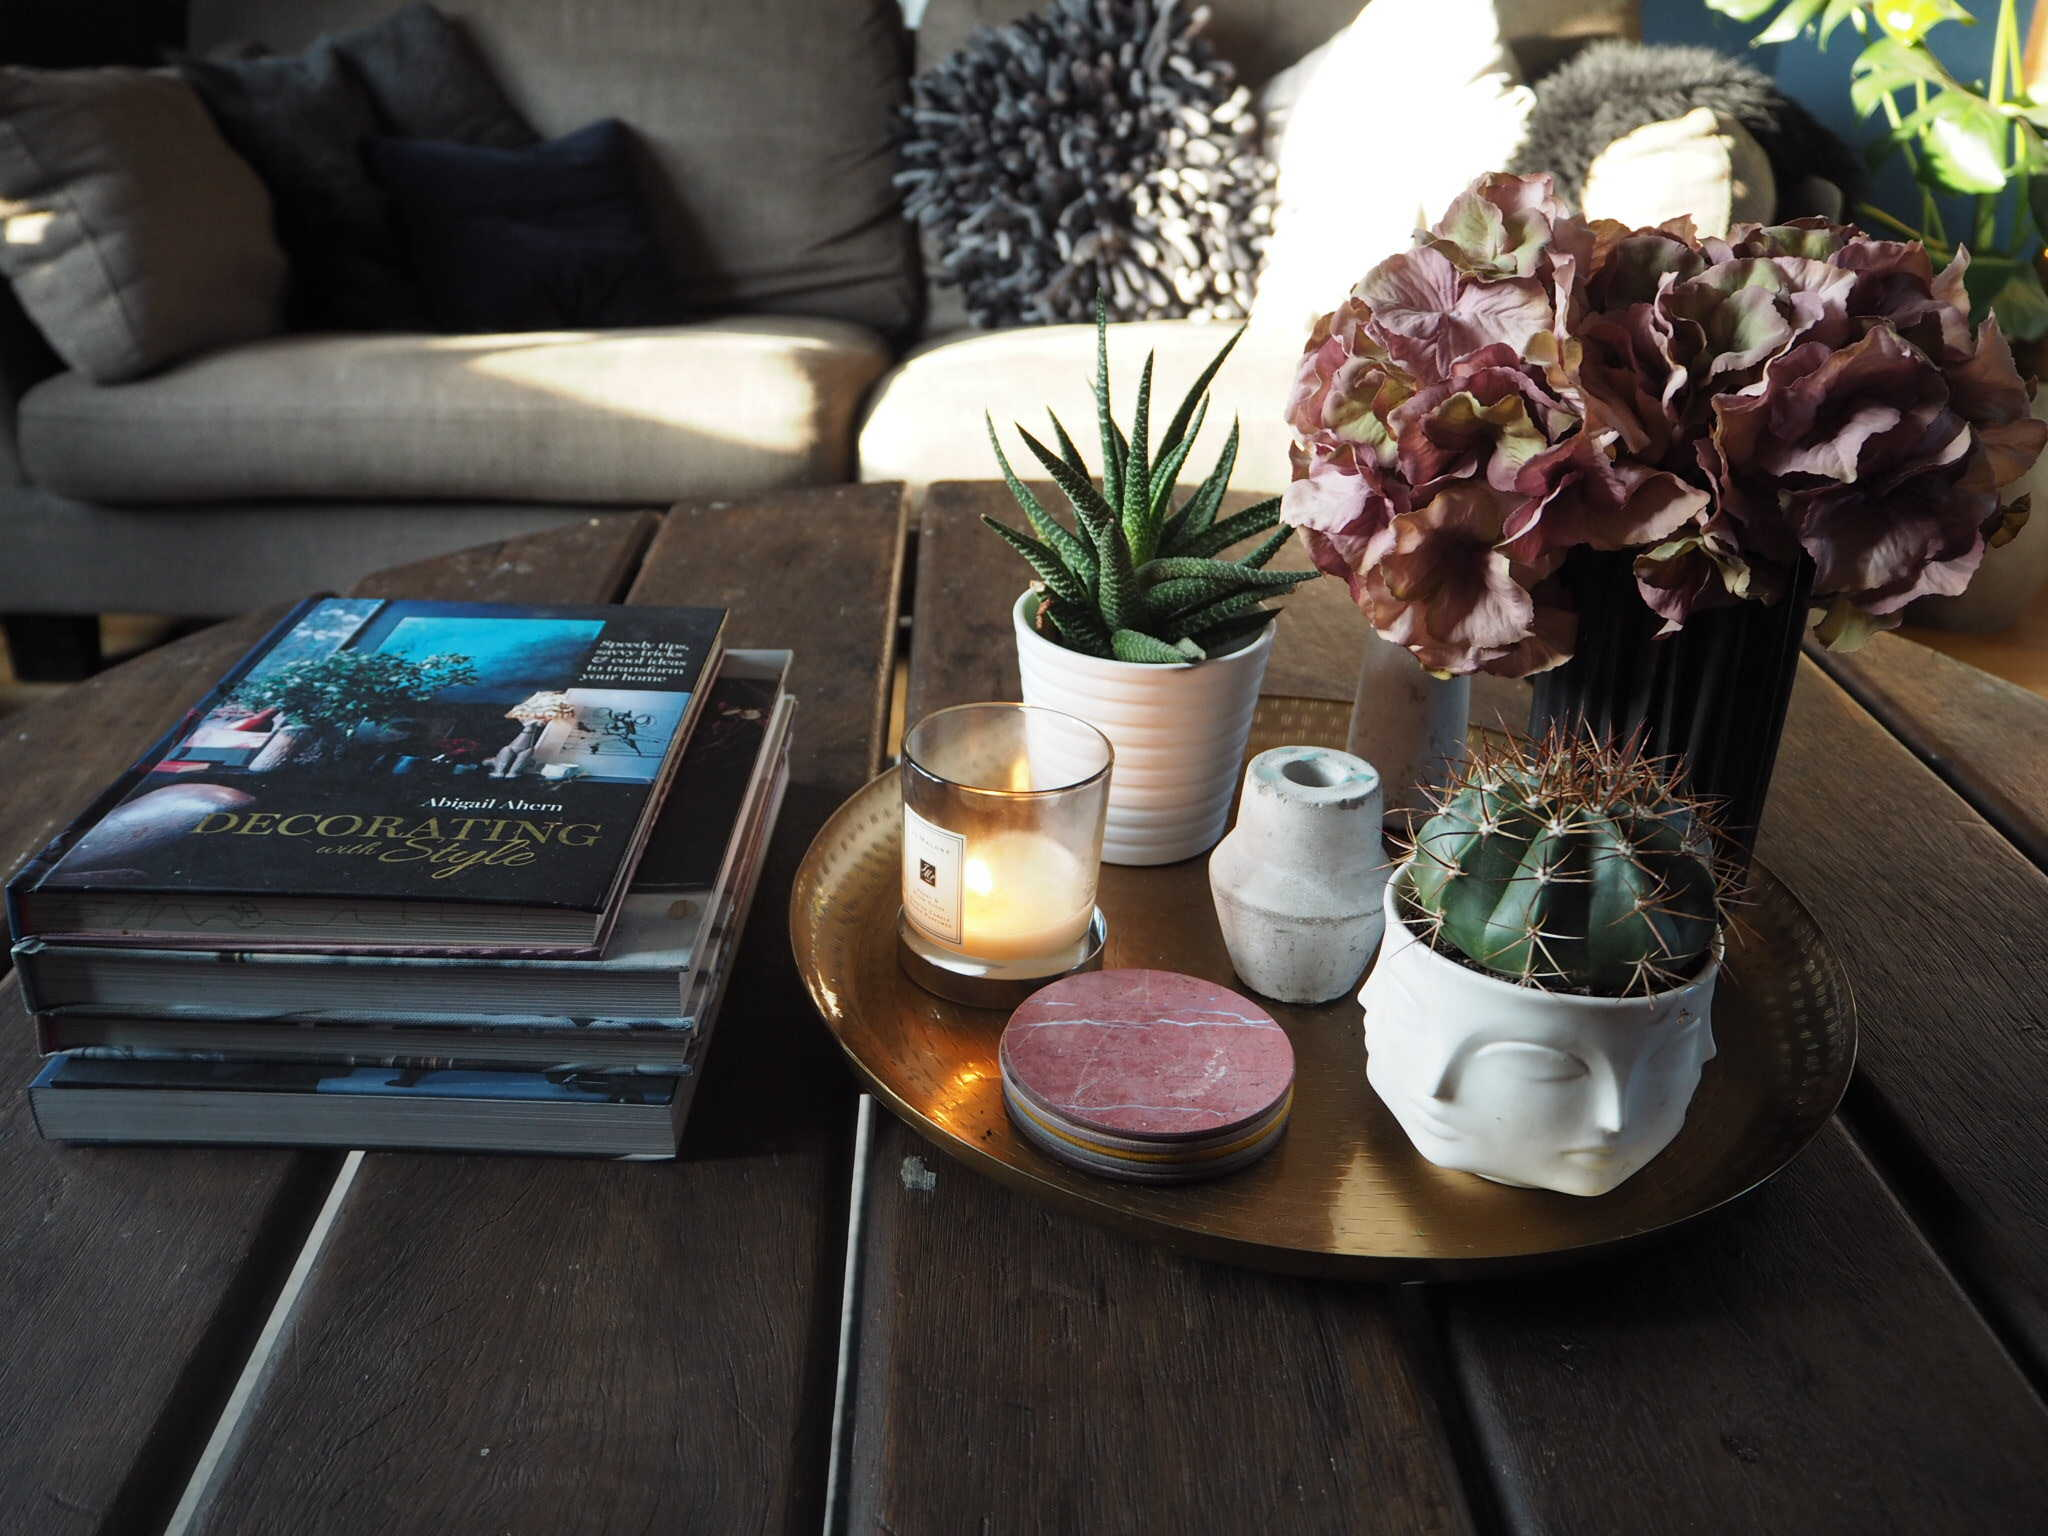 Tablescape with interior coffee table book styling